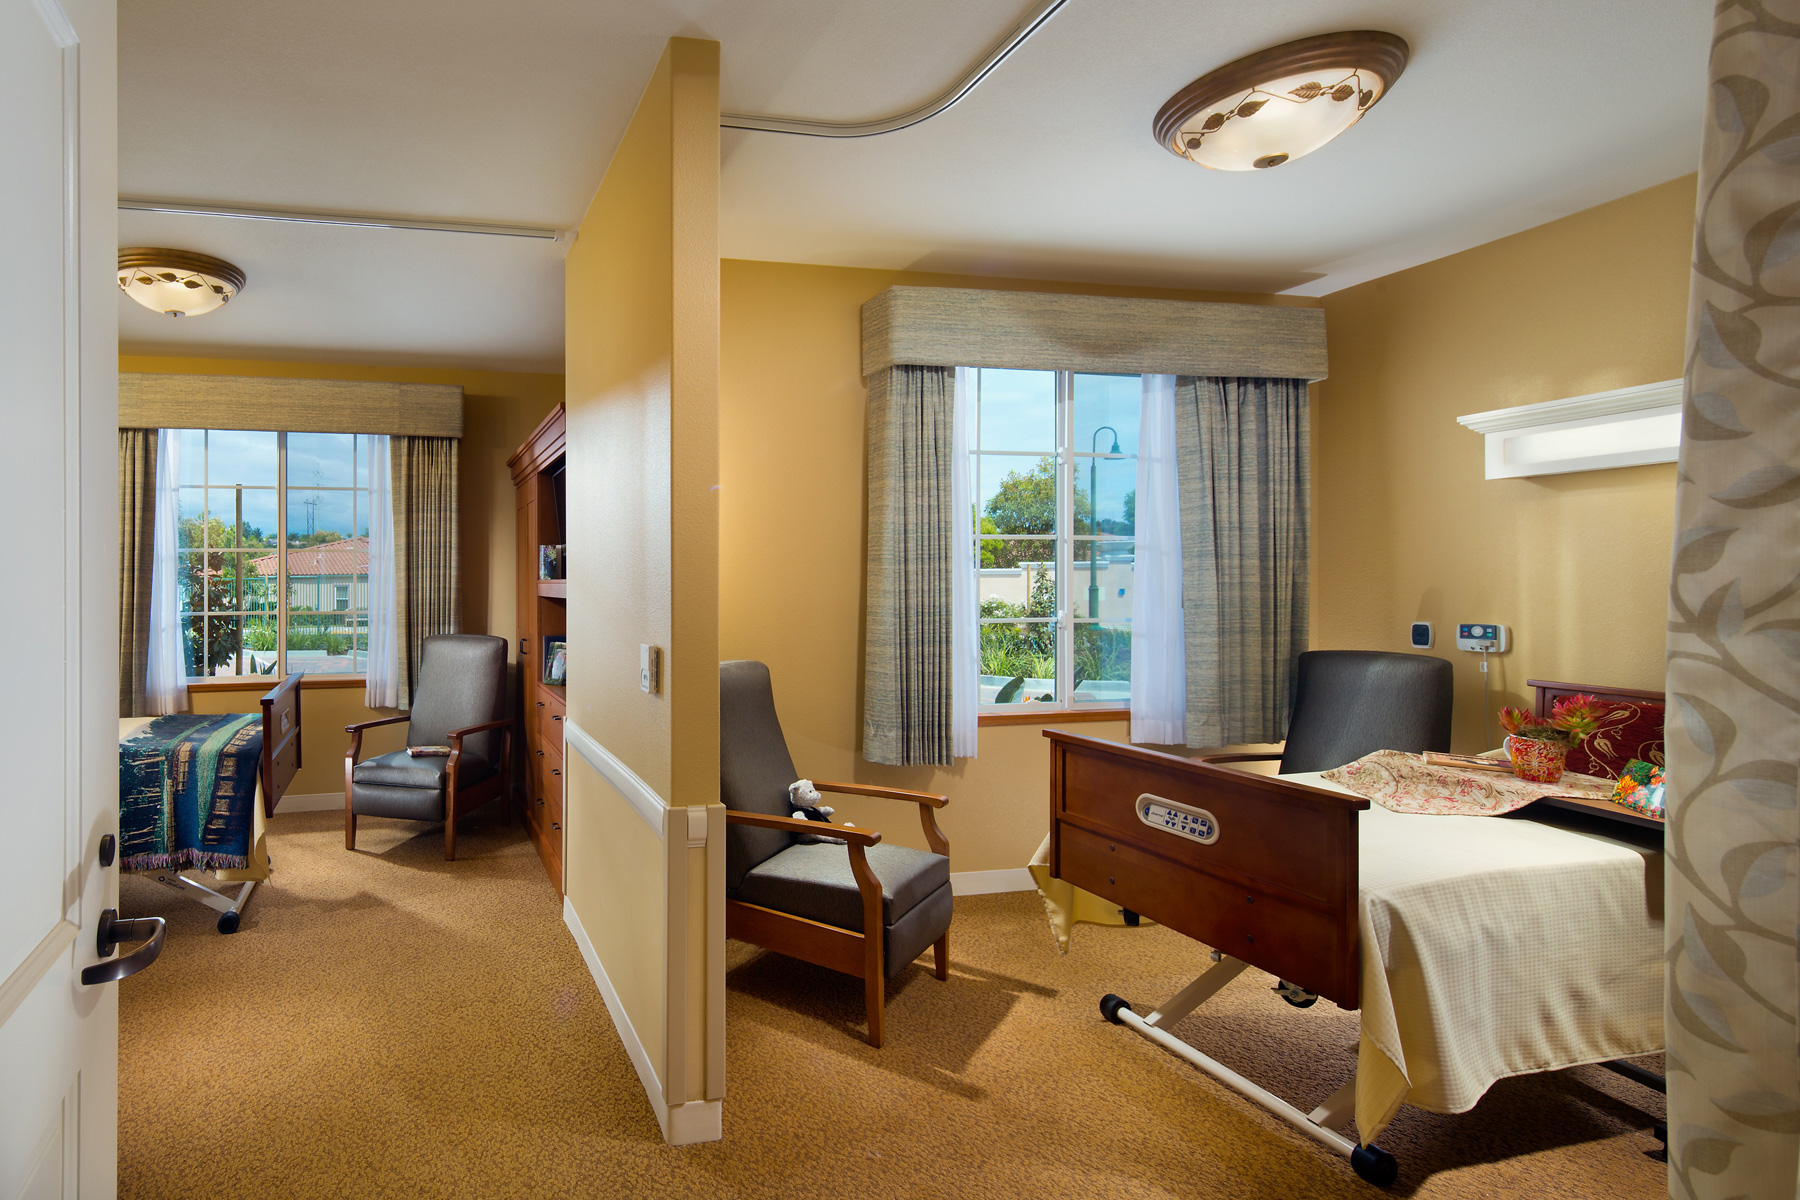 Resident bedrooms with seating and large windows for natural light.